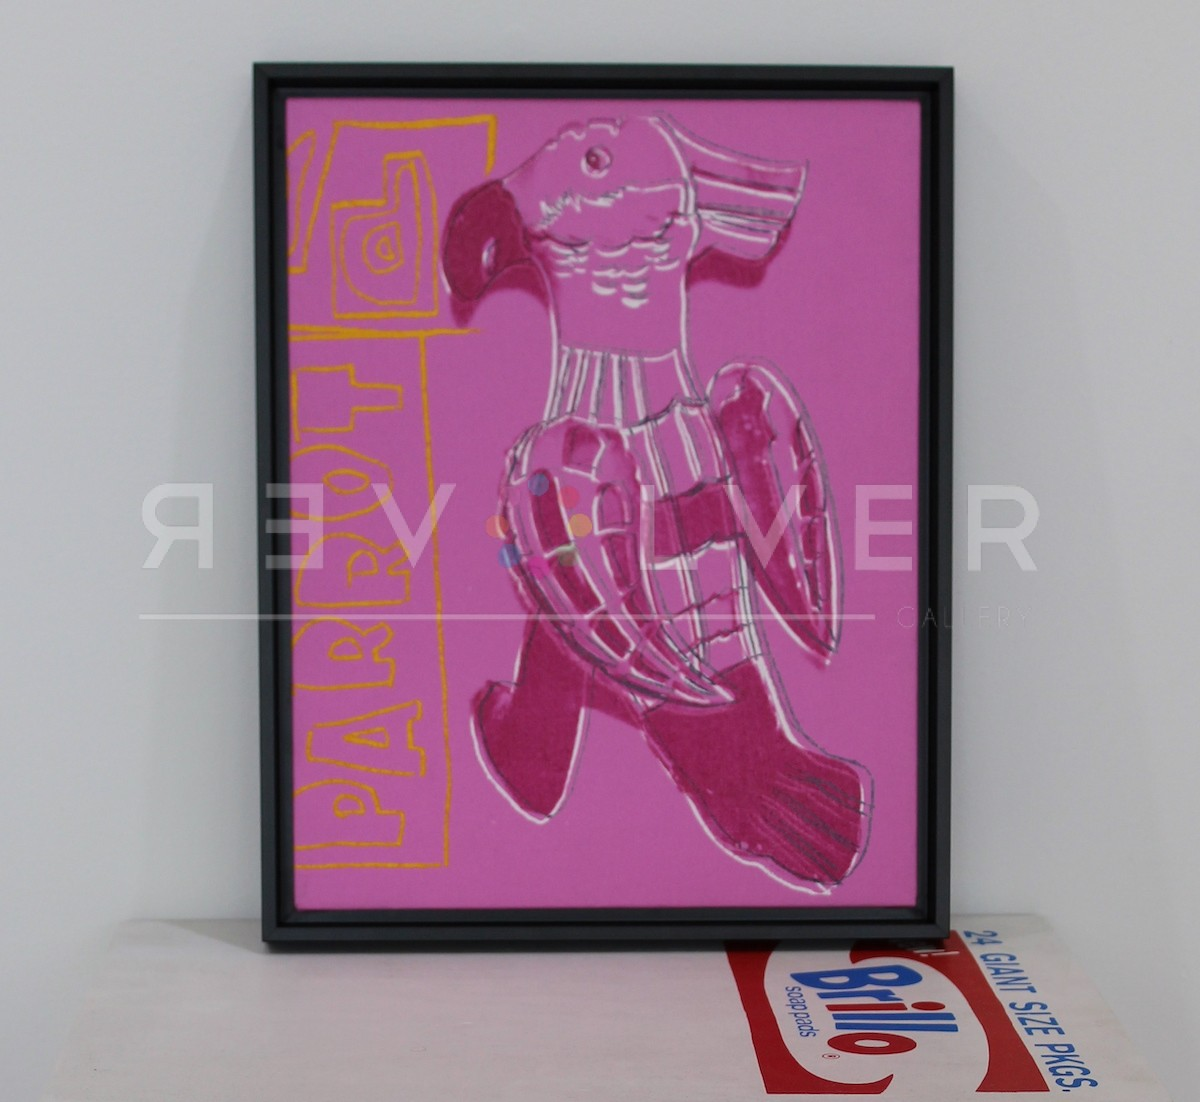 Picture of Toy Painting: Parrot, 1983, pink, yellow, gray, in frame, by Andy Warhol